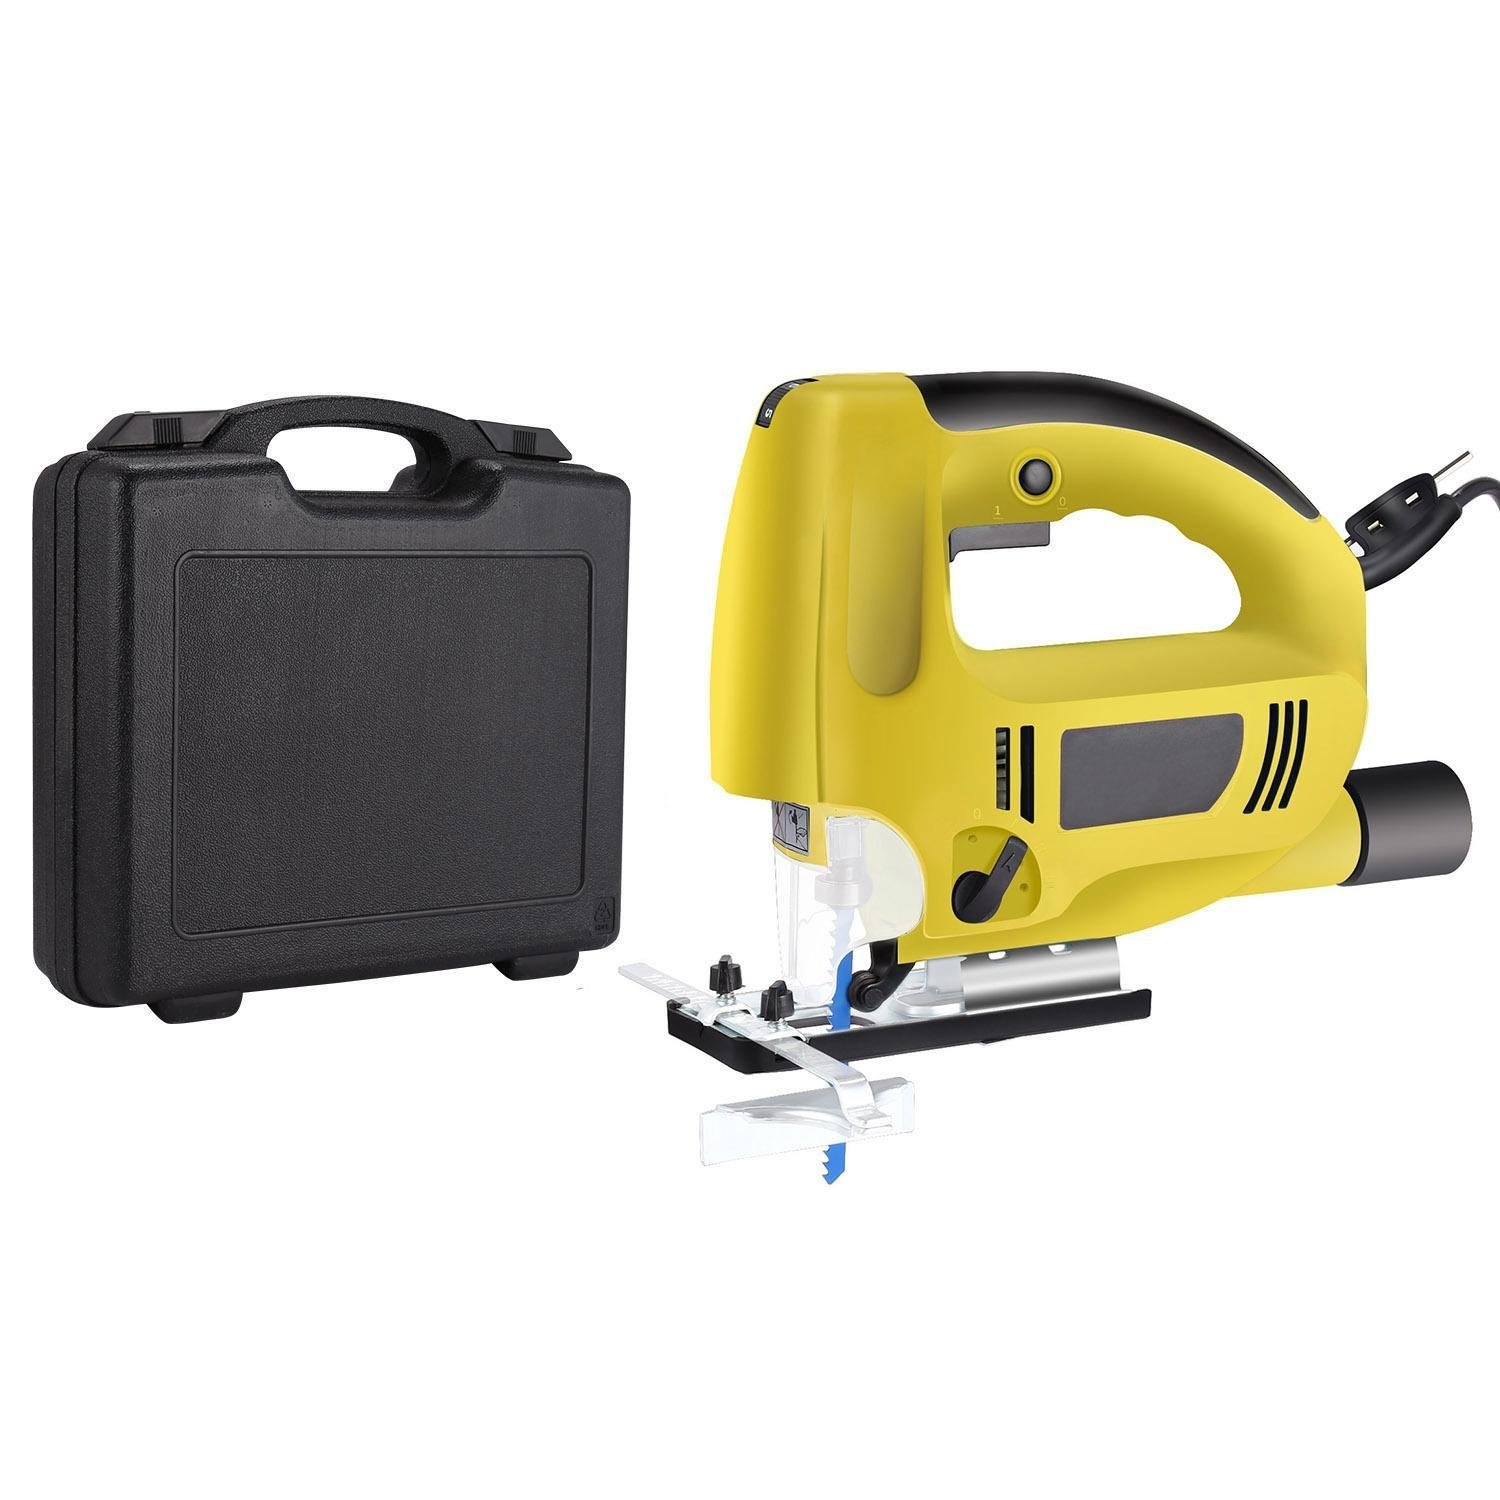 Benlet Jigsaw, 800W Electric Jig Saw w/Laser Light 5.9FT Cord with Carrying Case (Blue)